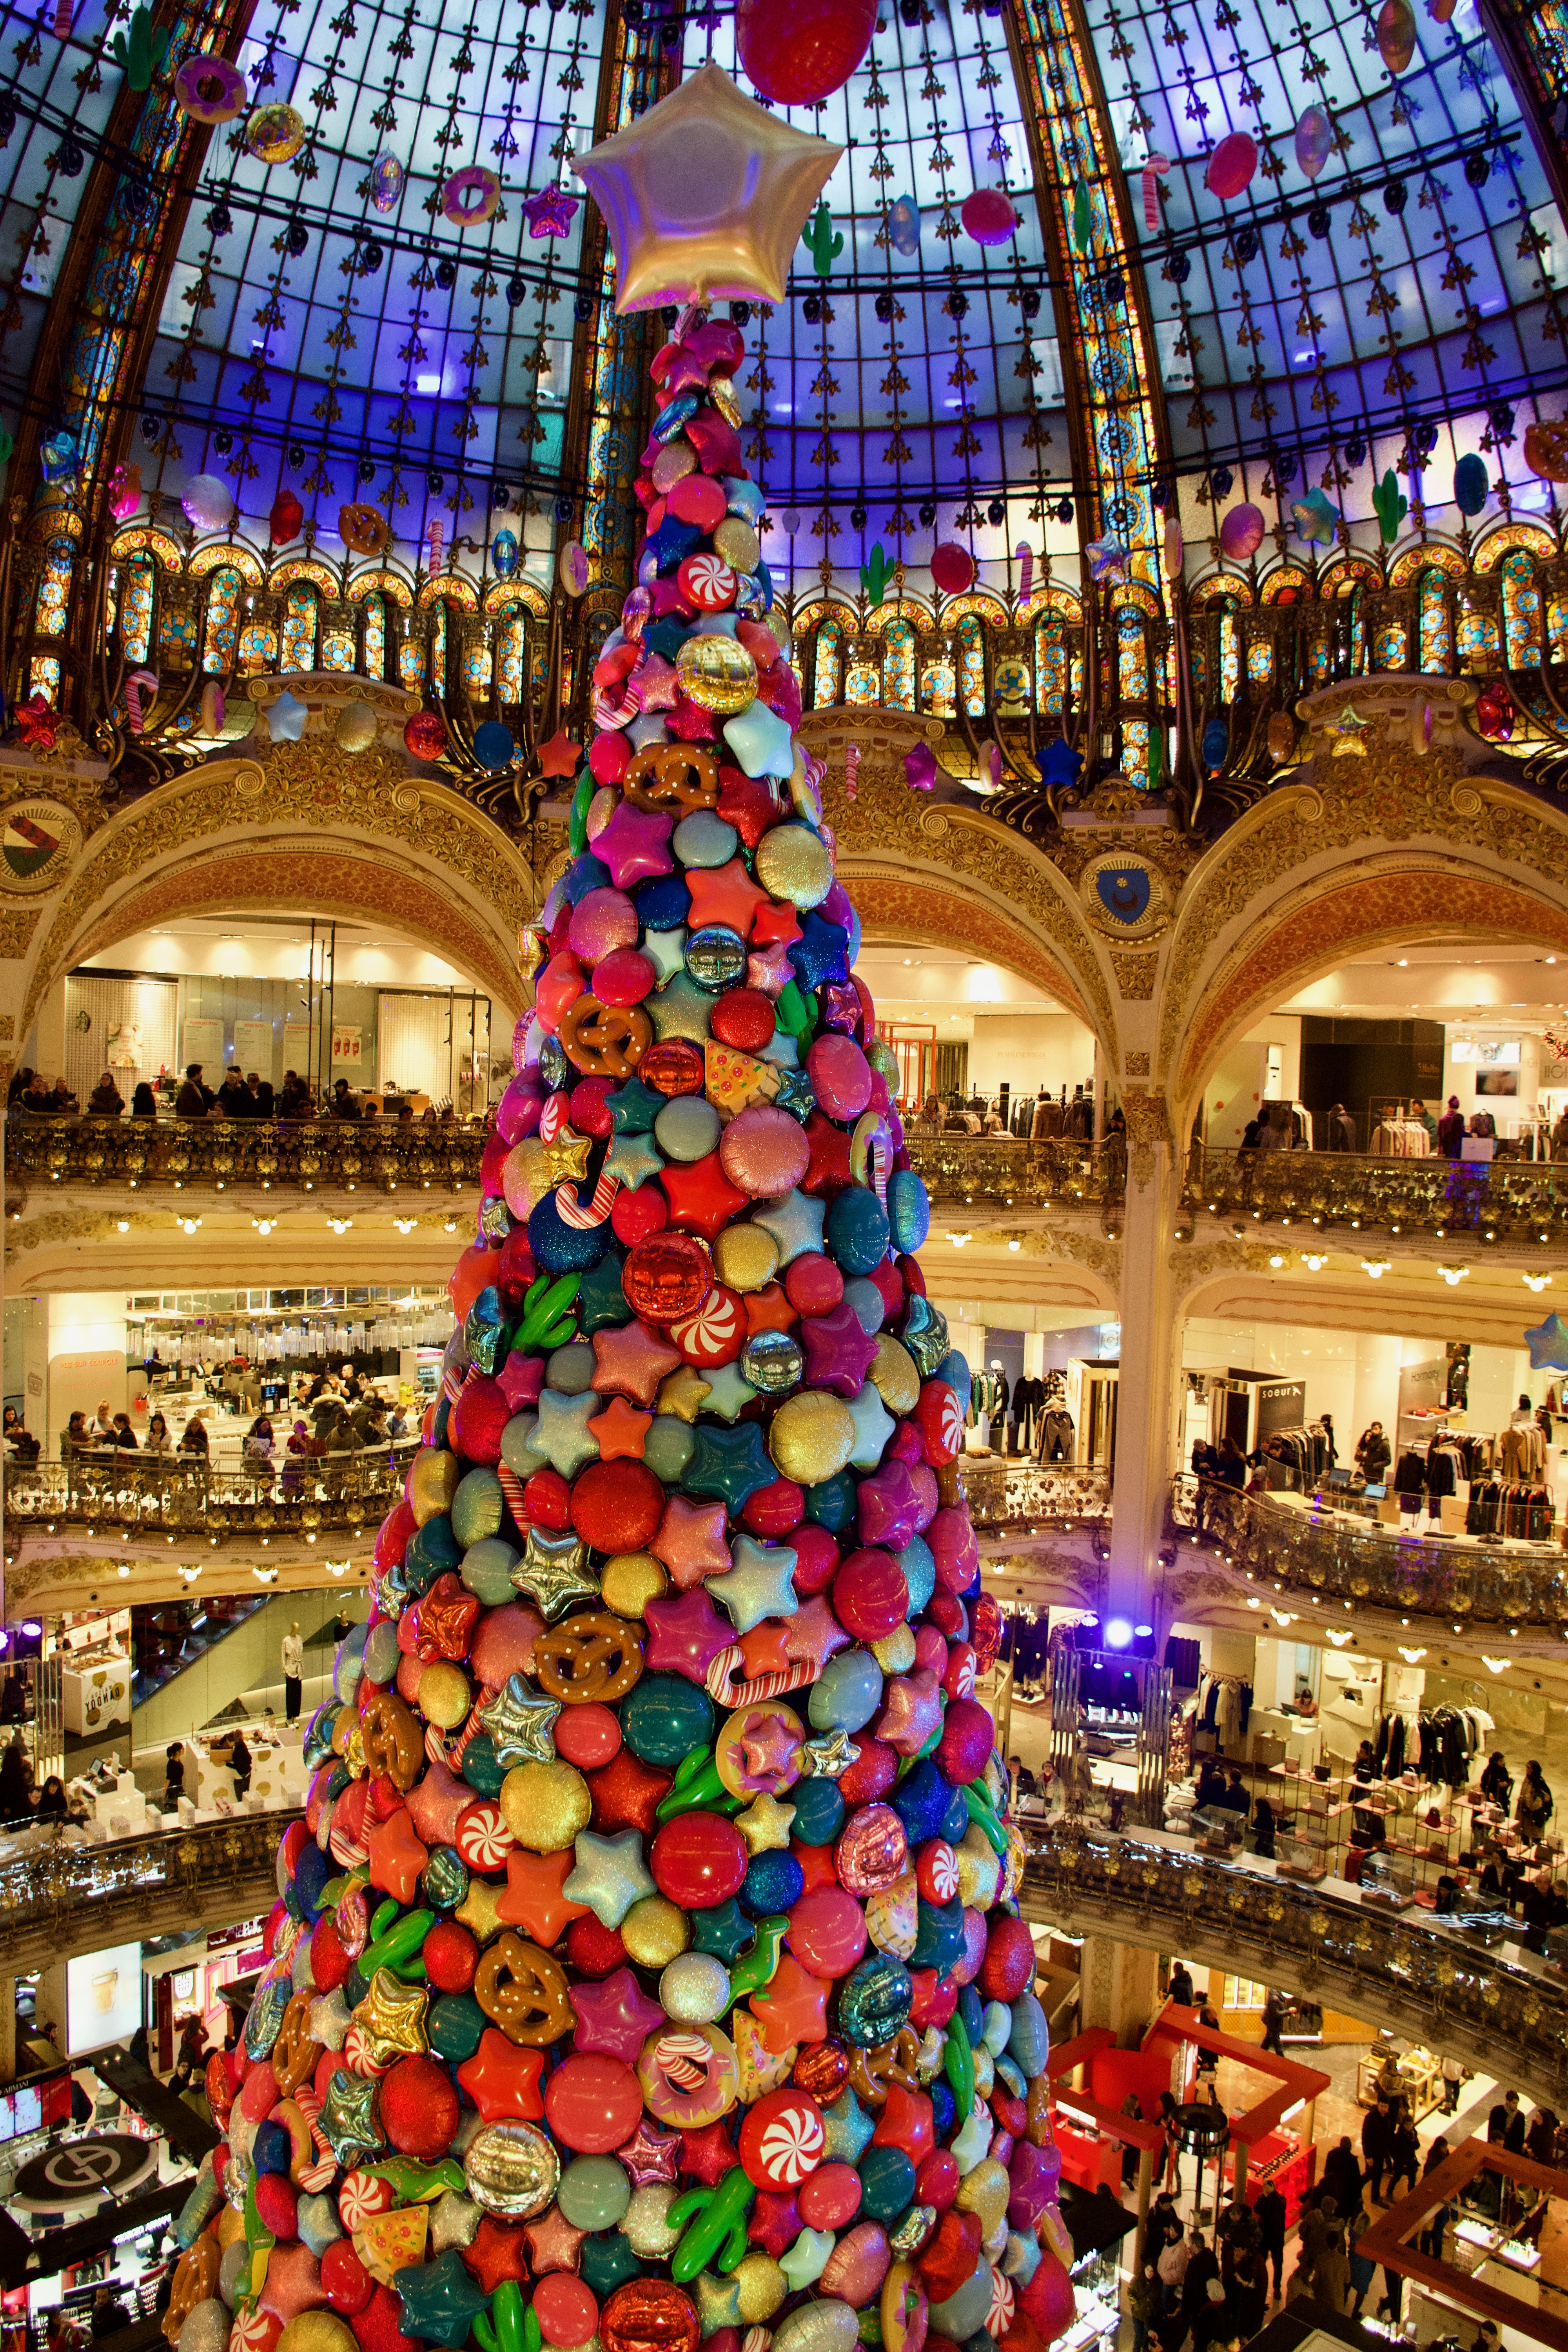 galerie lafayette christmas tree